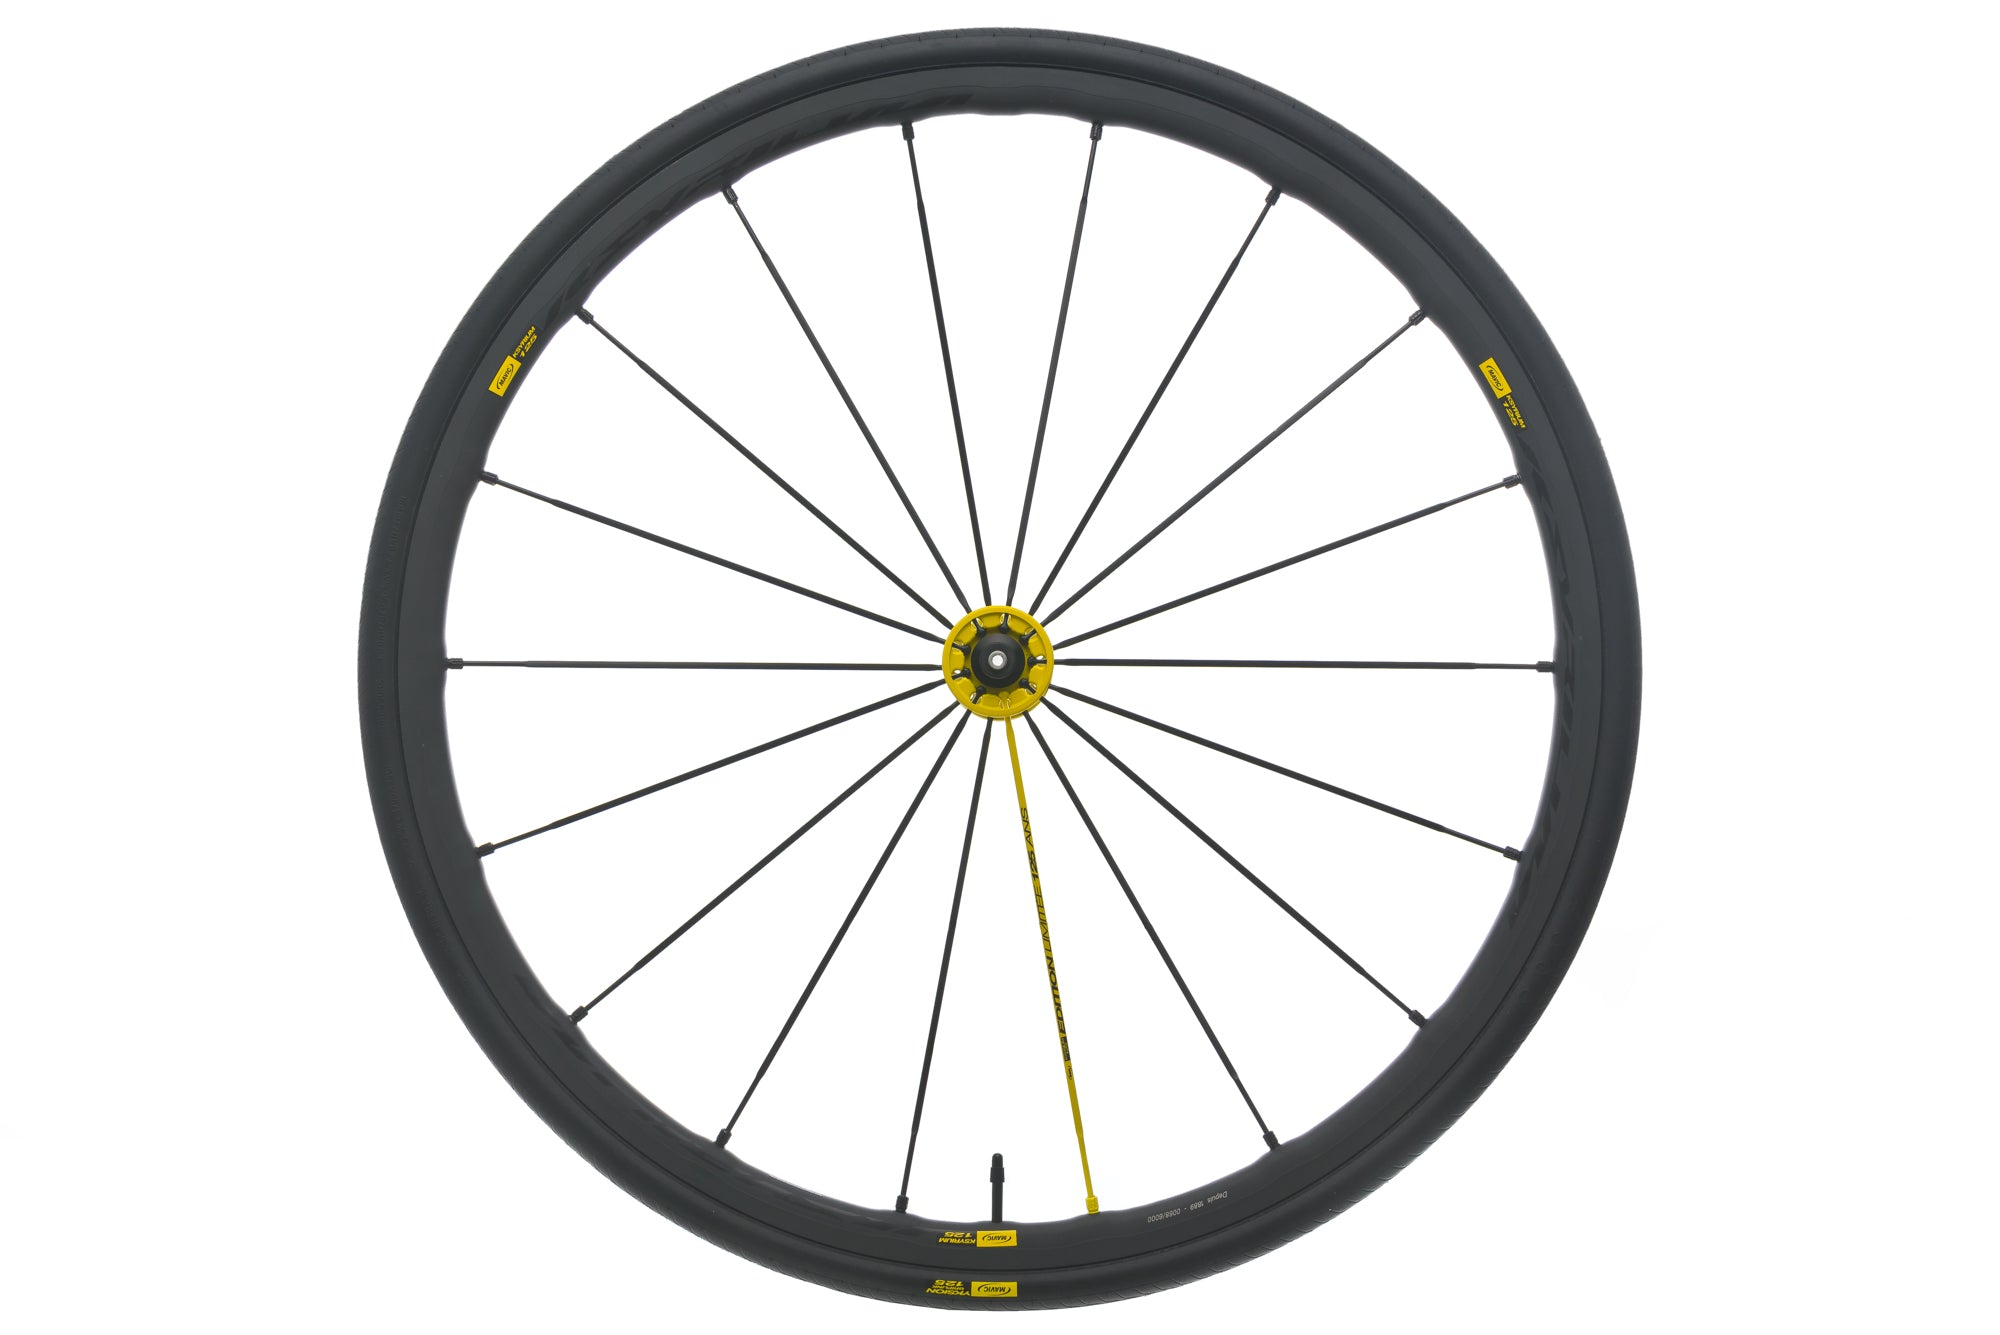 Mavic Ksyrium 125 Aluminum Clincher 700c Front Wheel drive side